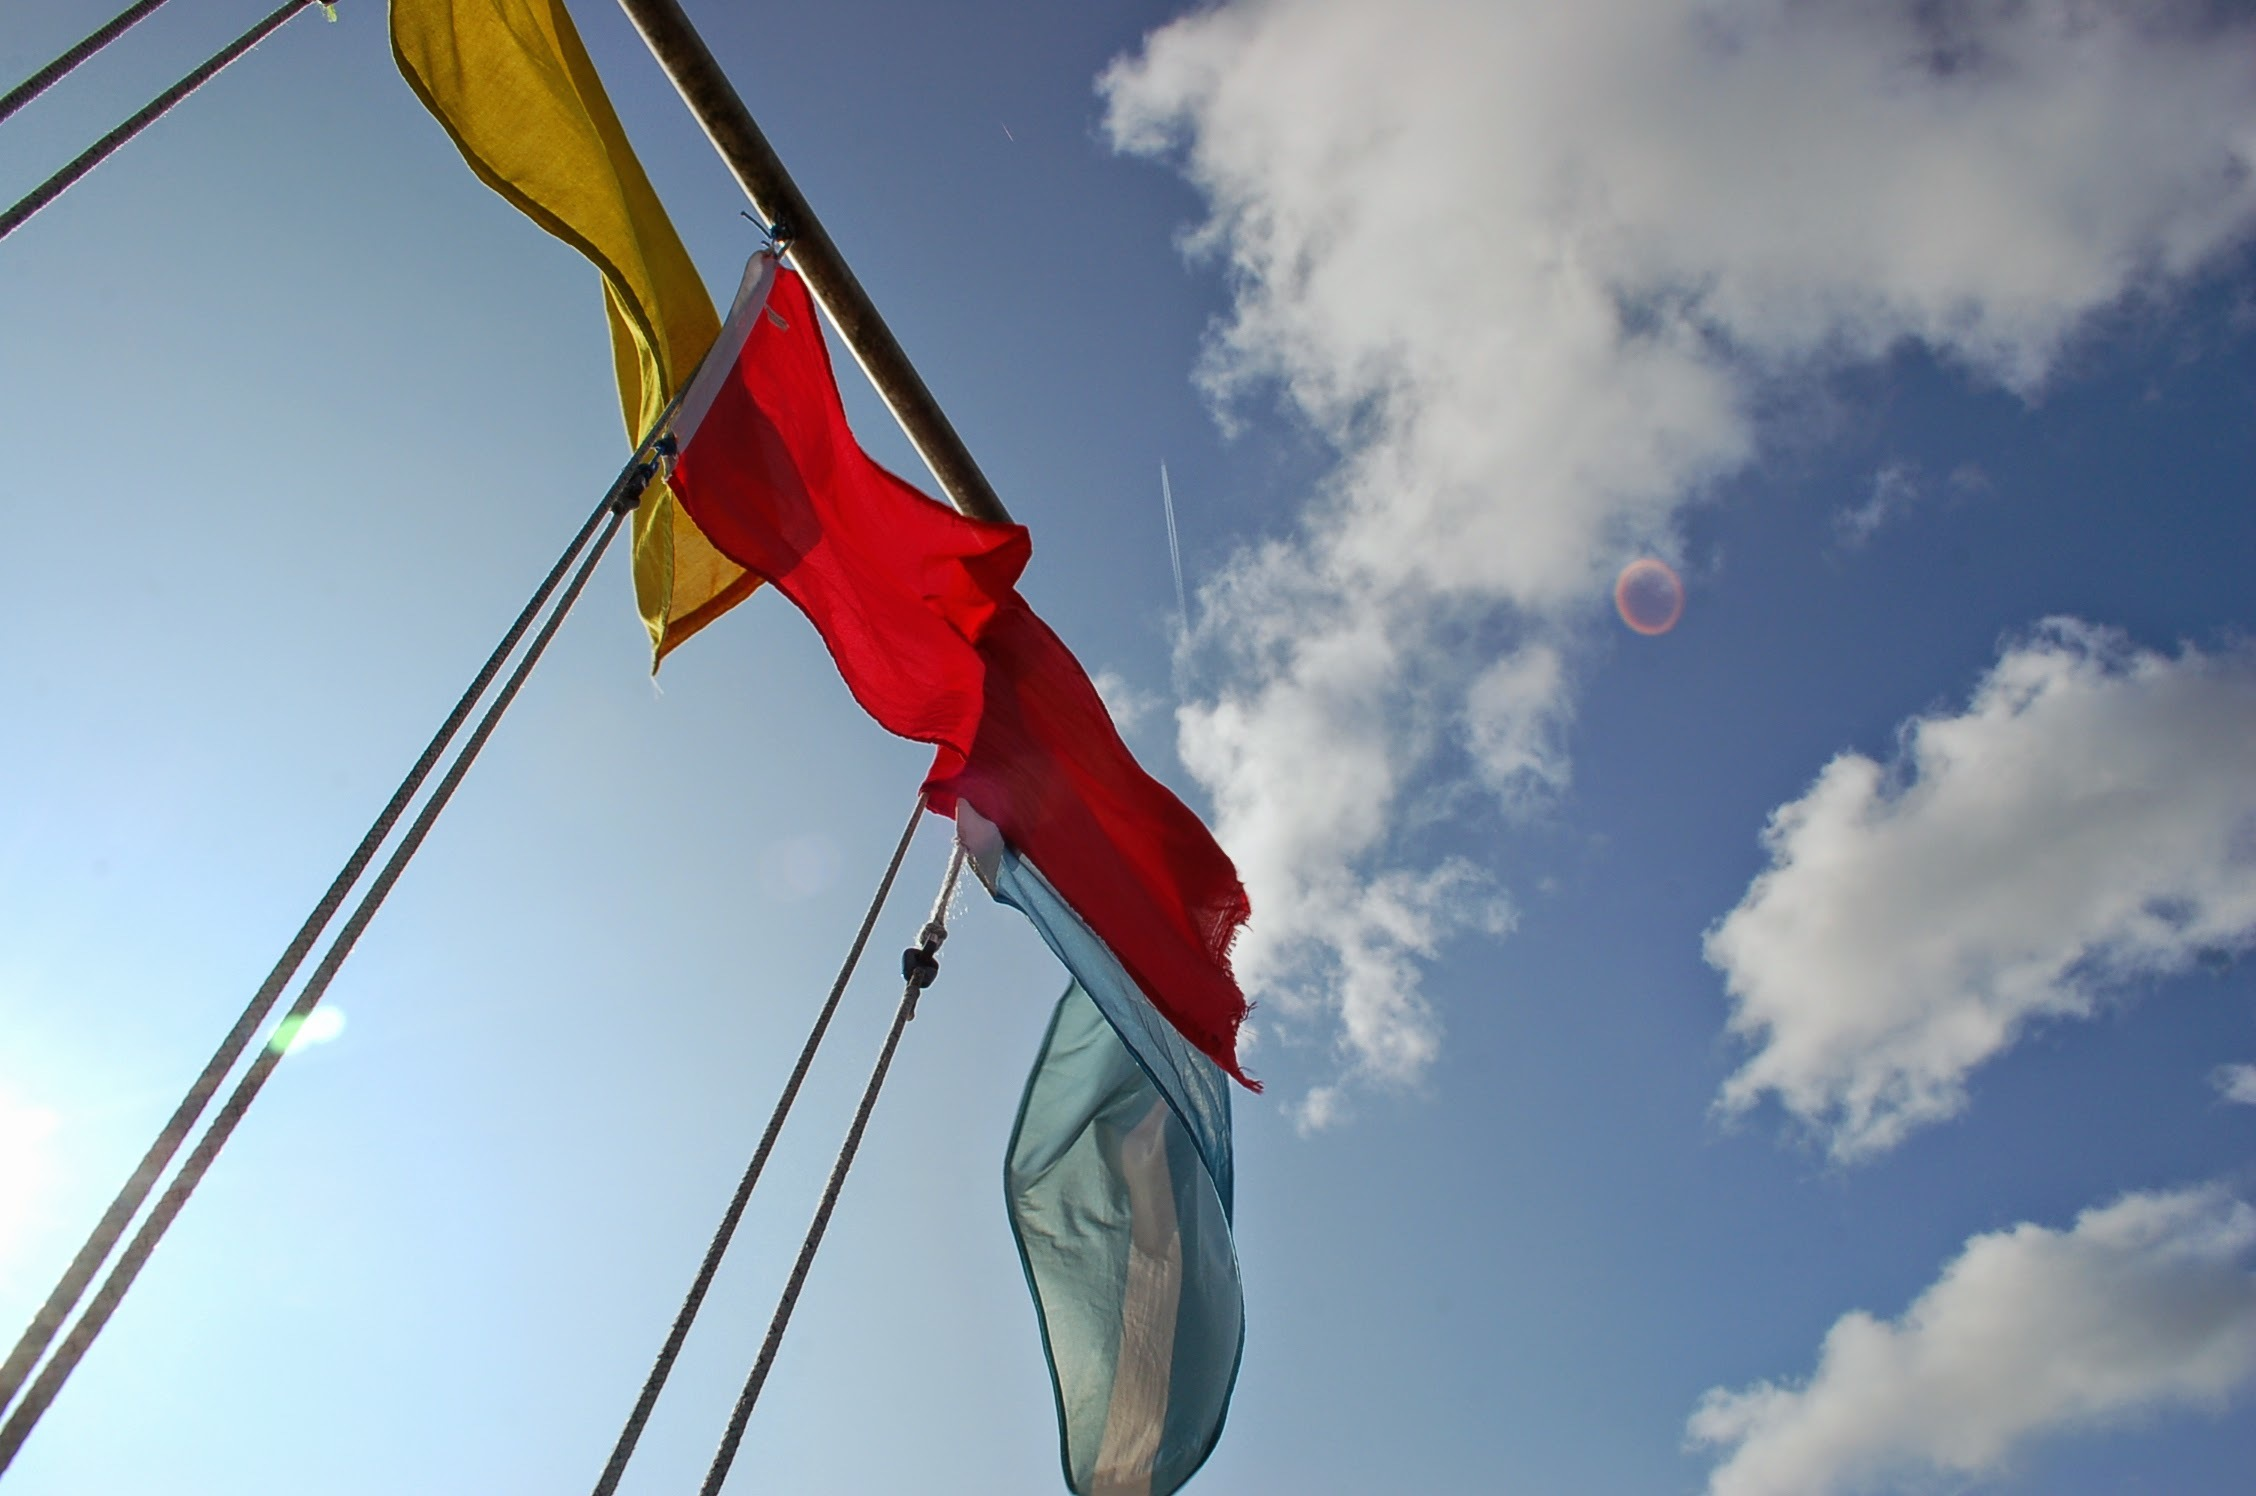 flags on comittee boat title for professional development